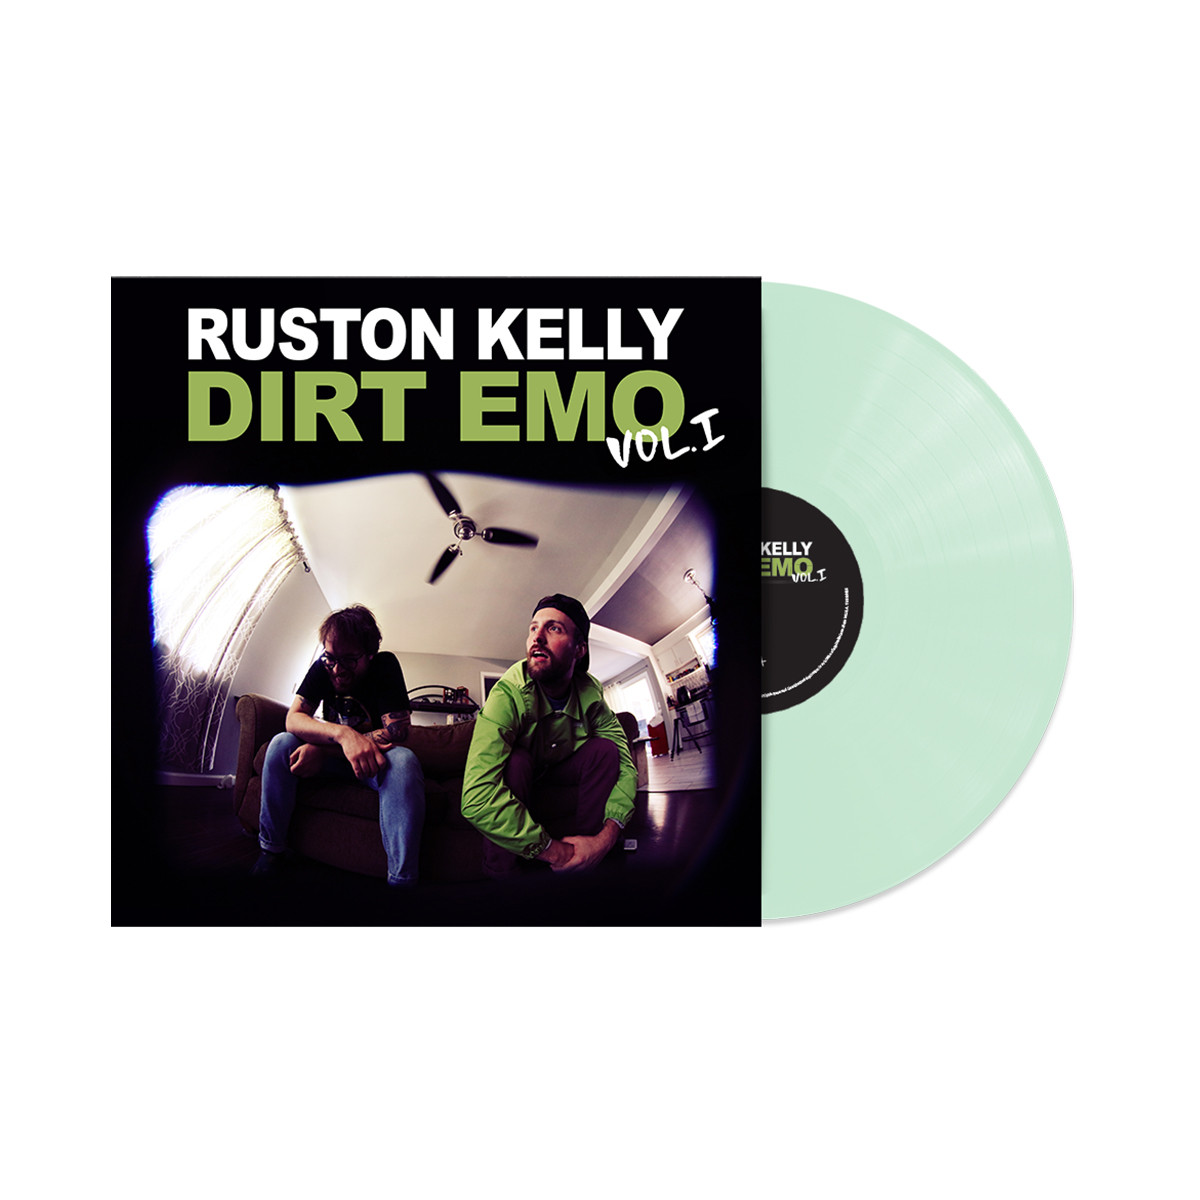 Signed or Unsigned Dirt Emo Vol. 1 GLOW-IN-THE-DARK Vinyl